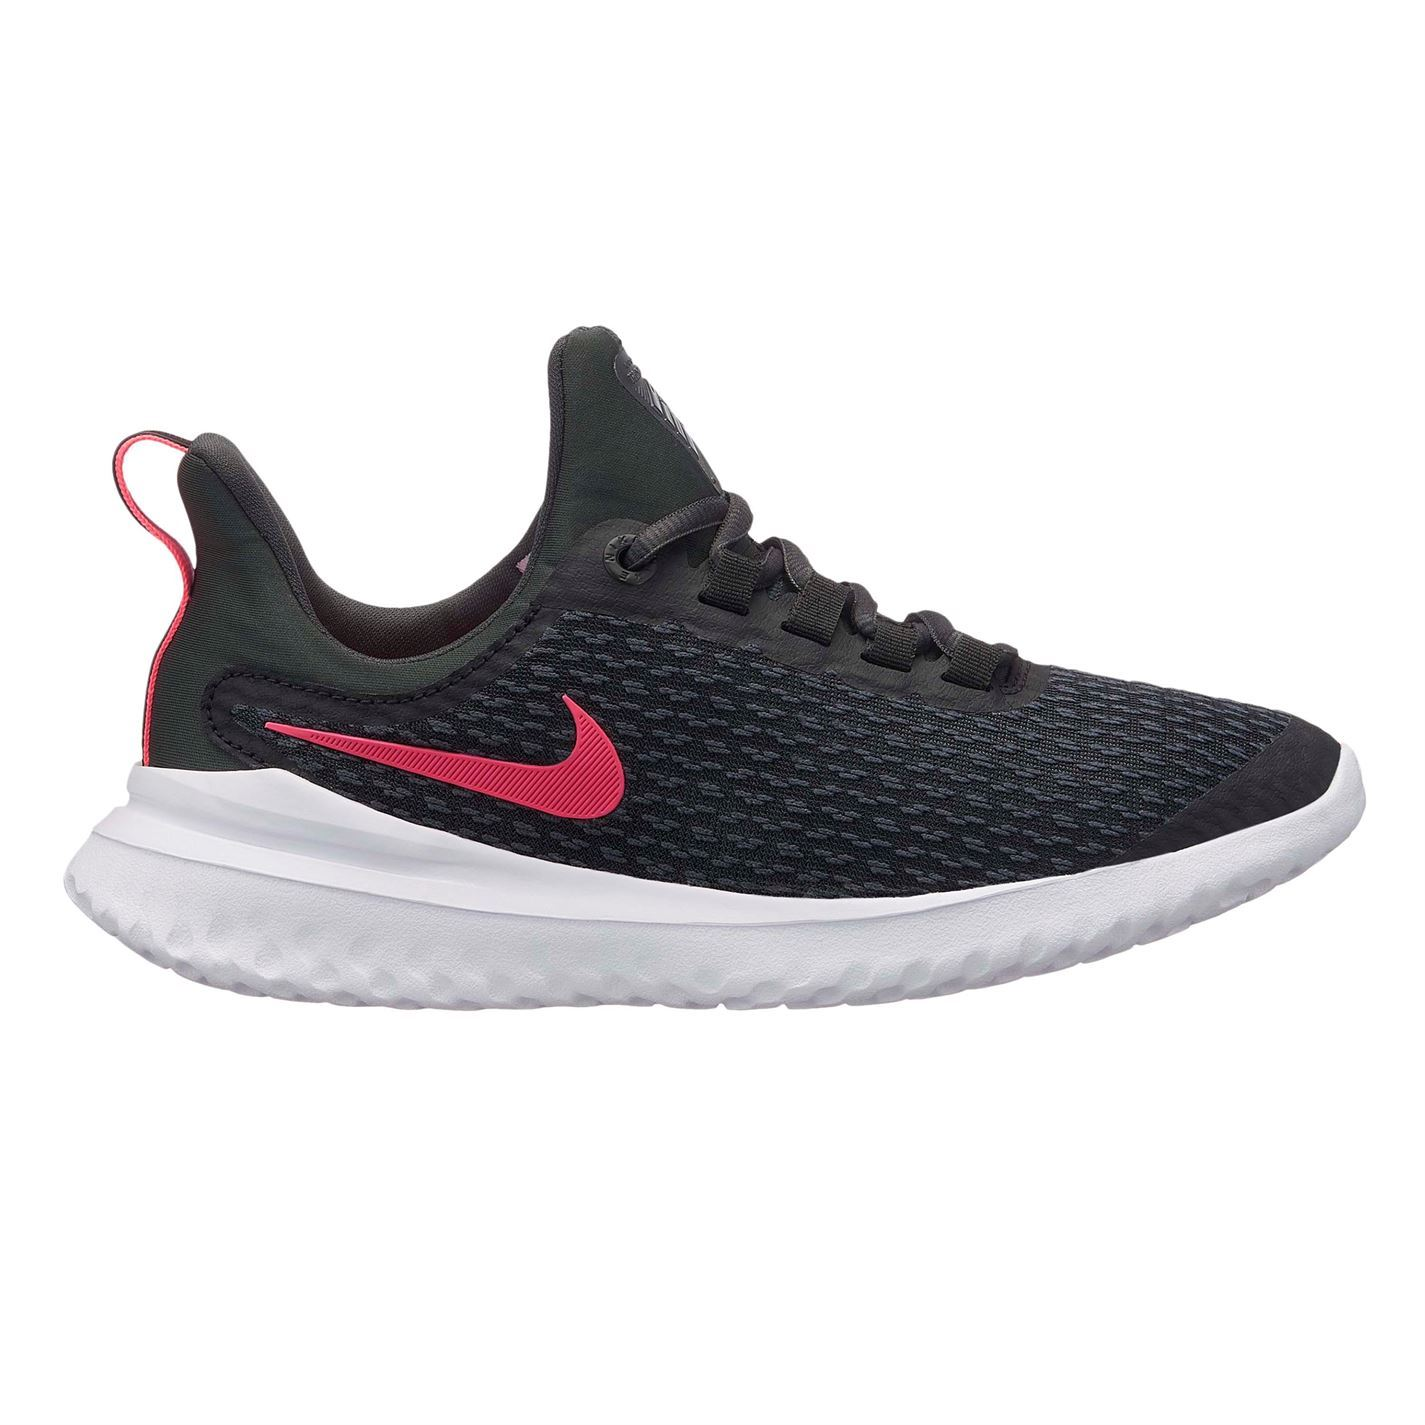 sale retailer 5d259 093c7 Details about Nike Renew Rival Trainers Junior Girls Black/Pink Shoes  Footwear